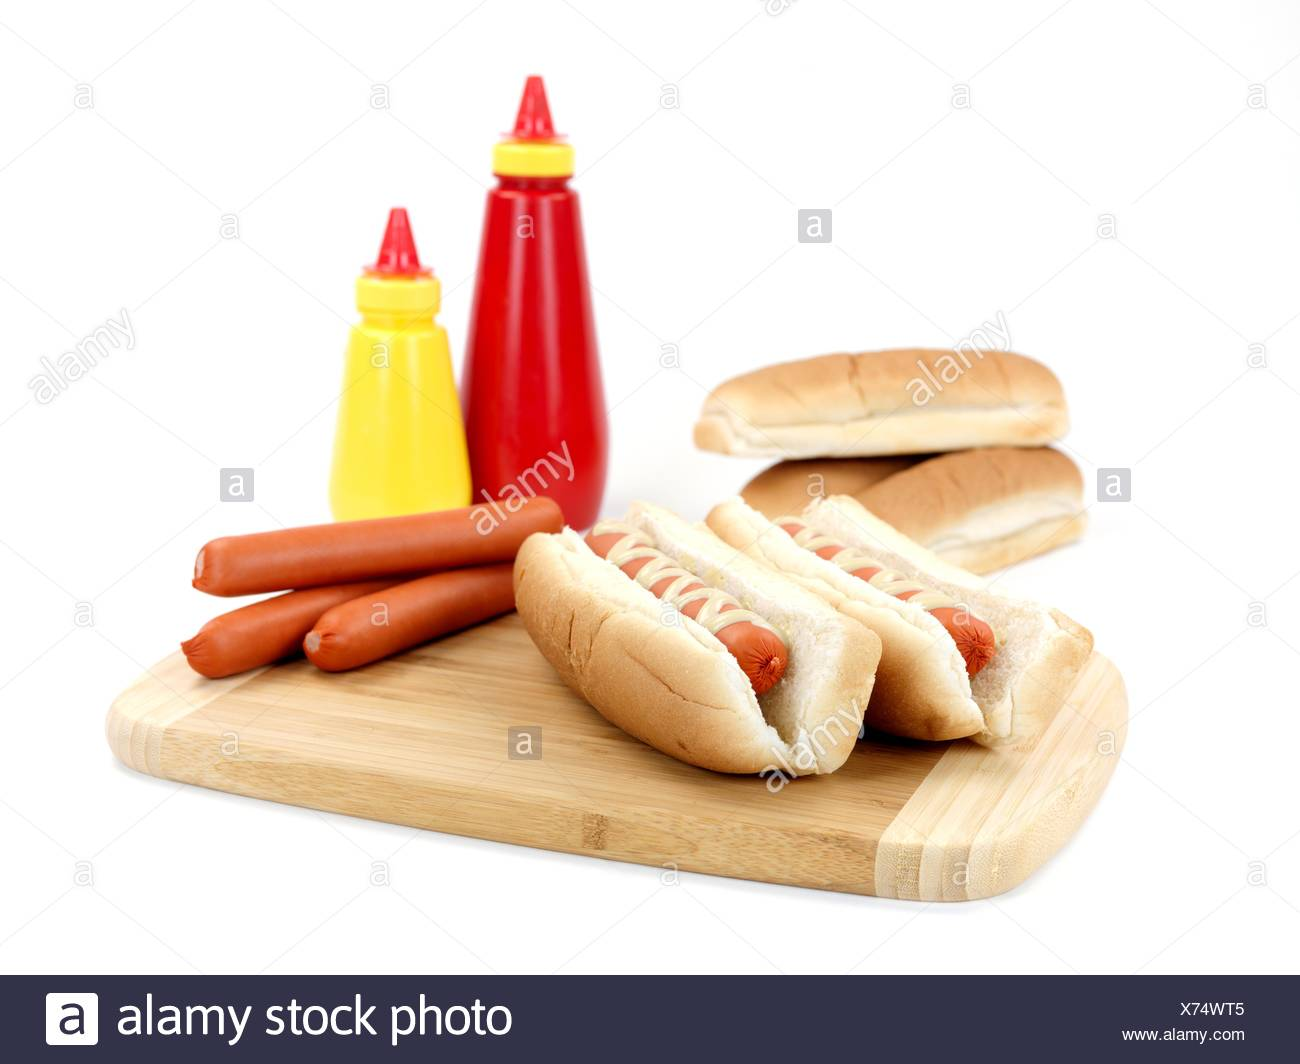 A hotdog with mustard sauce on a kitchen bench - Stock Image